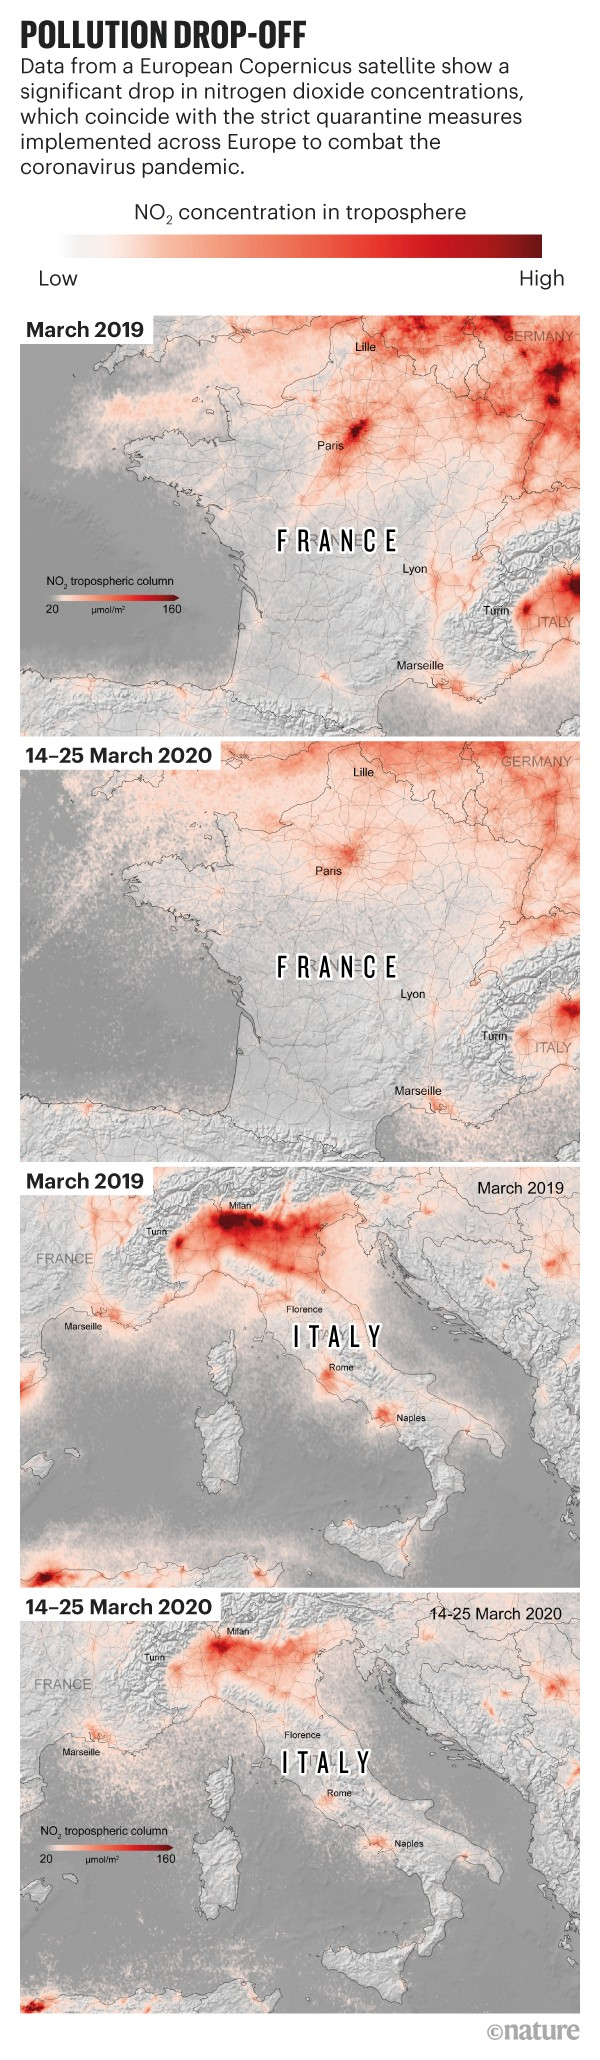 Pollution drop-off: Maps of France and Italy showing nitrogen dioxide concentration in troposphere in March 2019 and March 2020.